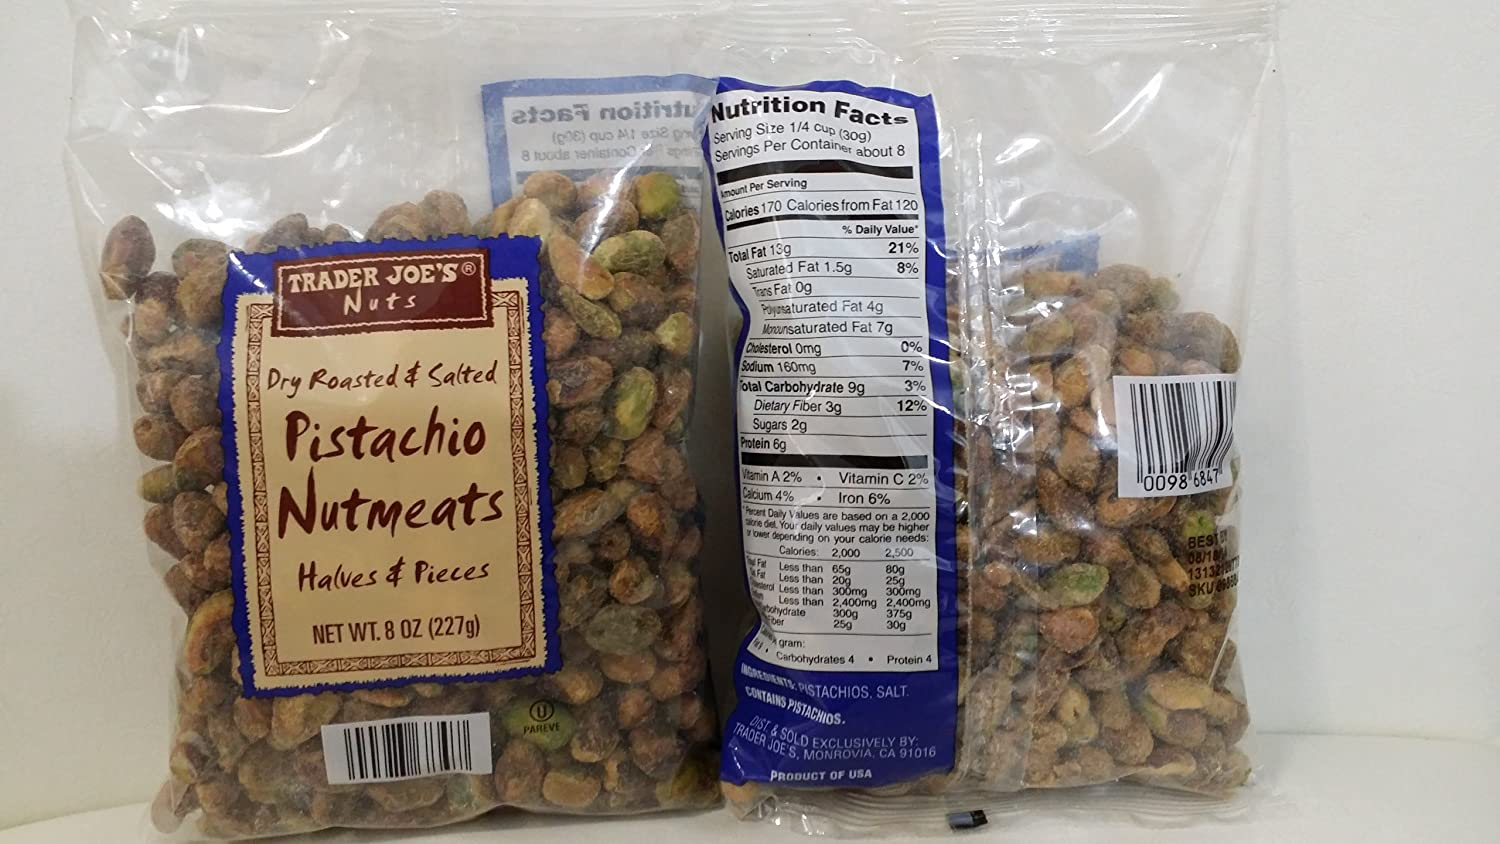 Trader Joes Pistachio Nutmeats 2021 shelled Limited time for free shipping 1 Salted - Roasted Dry